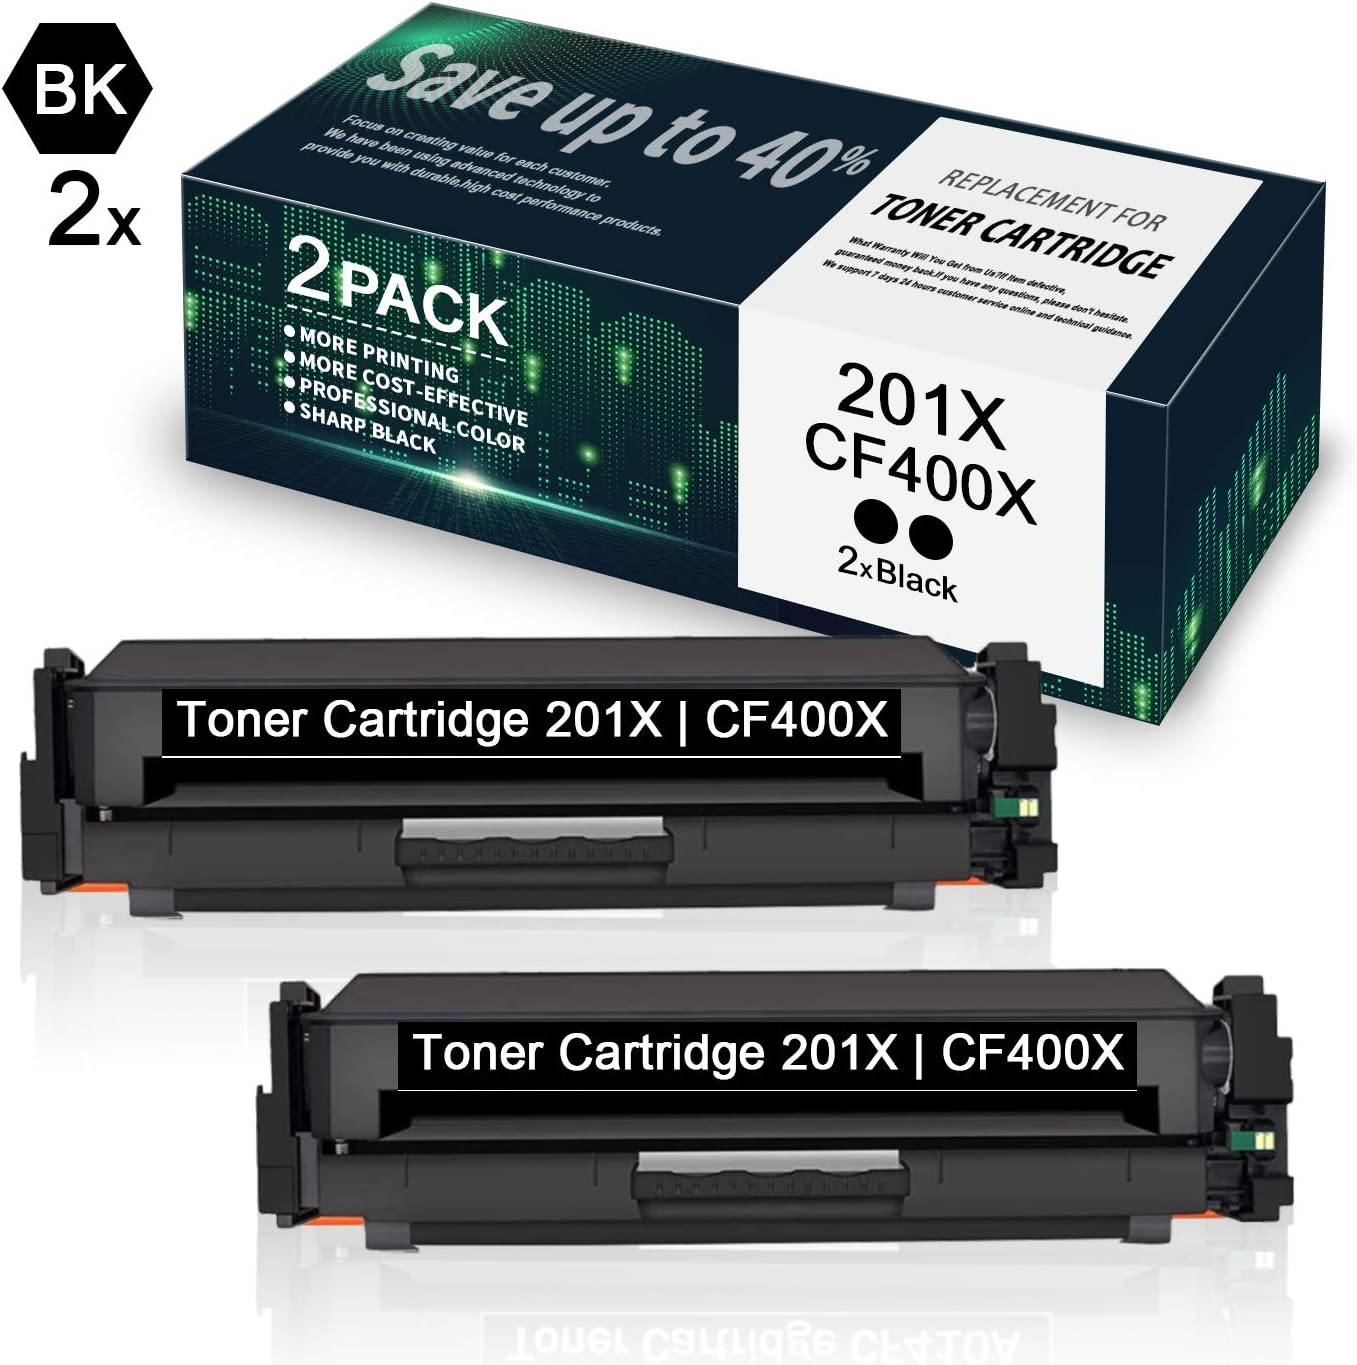 2 Pack High Yield 201X | CF400X Black Toner Cartridge Replacement for HP Color Laserjet Pro M252dw M252n MFP M277n M277dw M277c6 M274n Printer Toner - by VaserInk